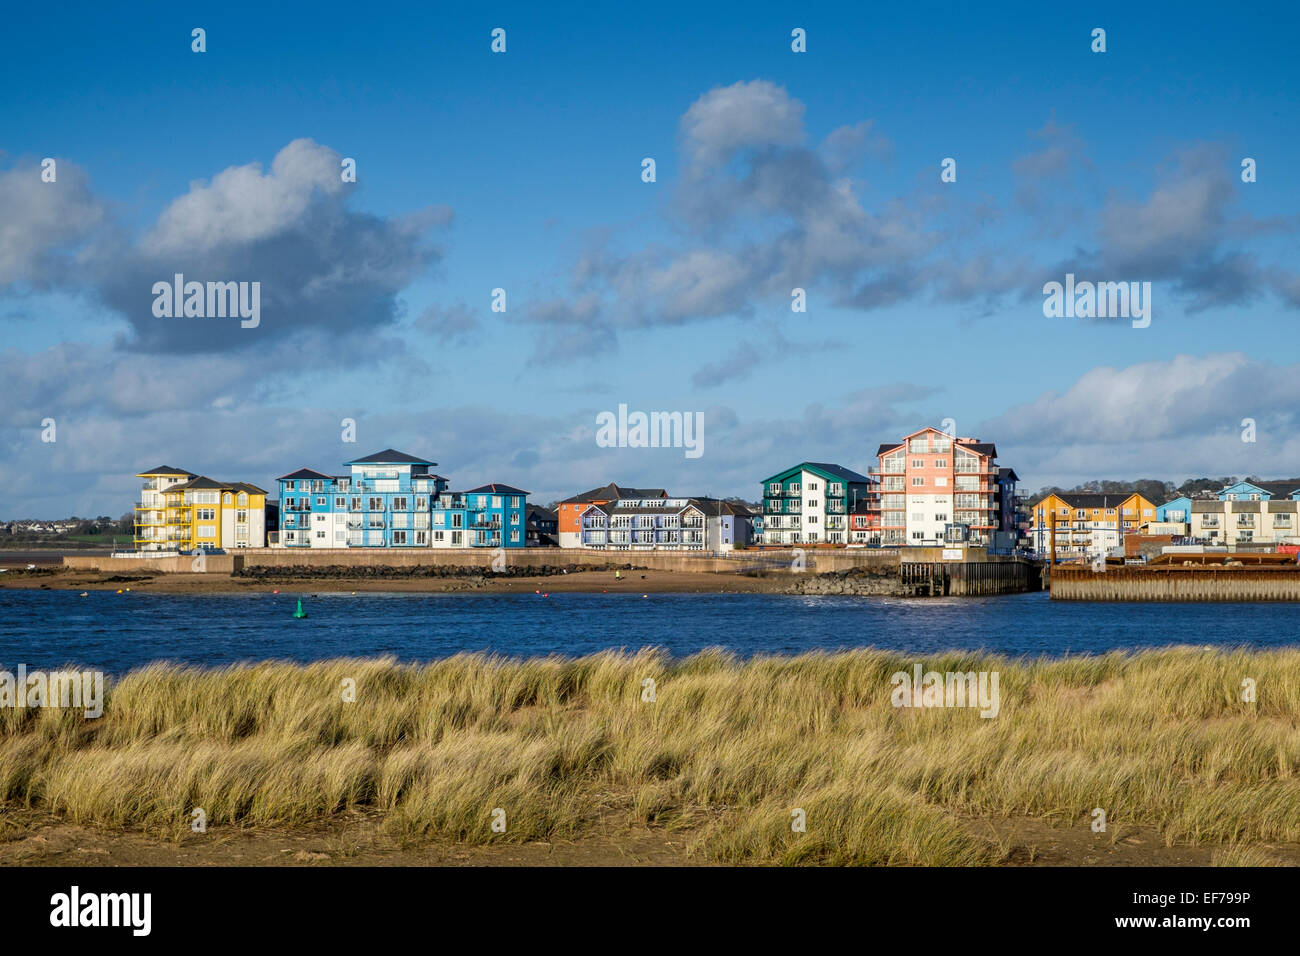 Modern apartments on Exmouth marina viewed accross the Exe estuary from Dawlish Warren - Stock Image